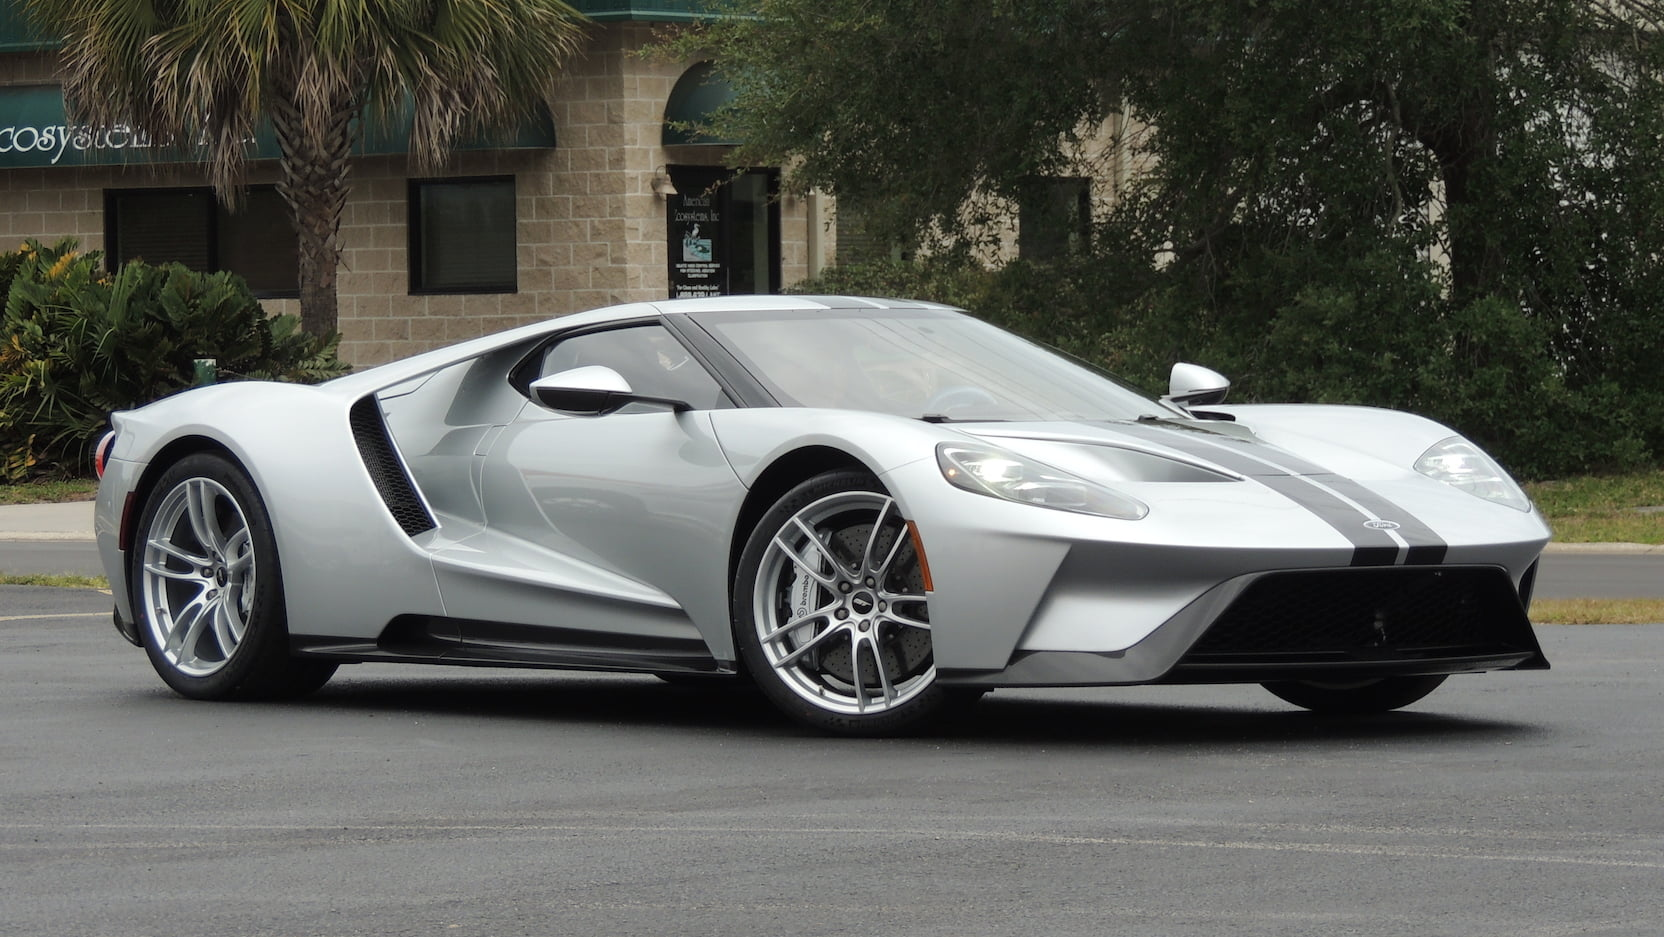 2017 Ford GT front 3/4